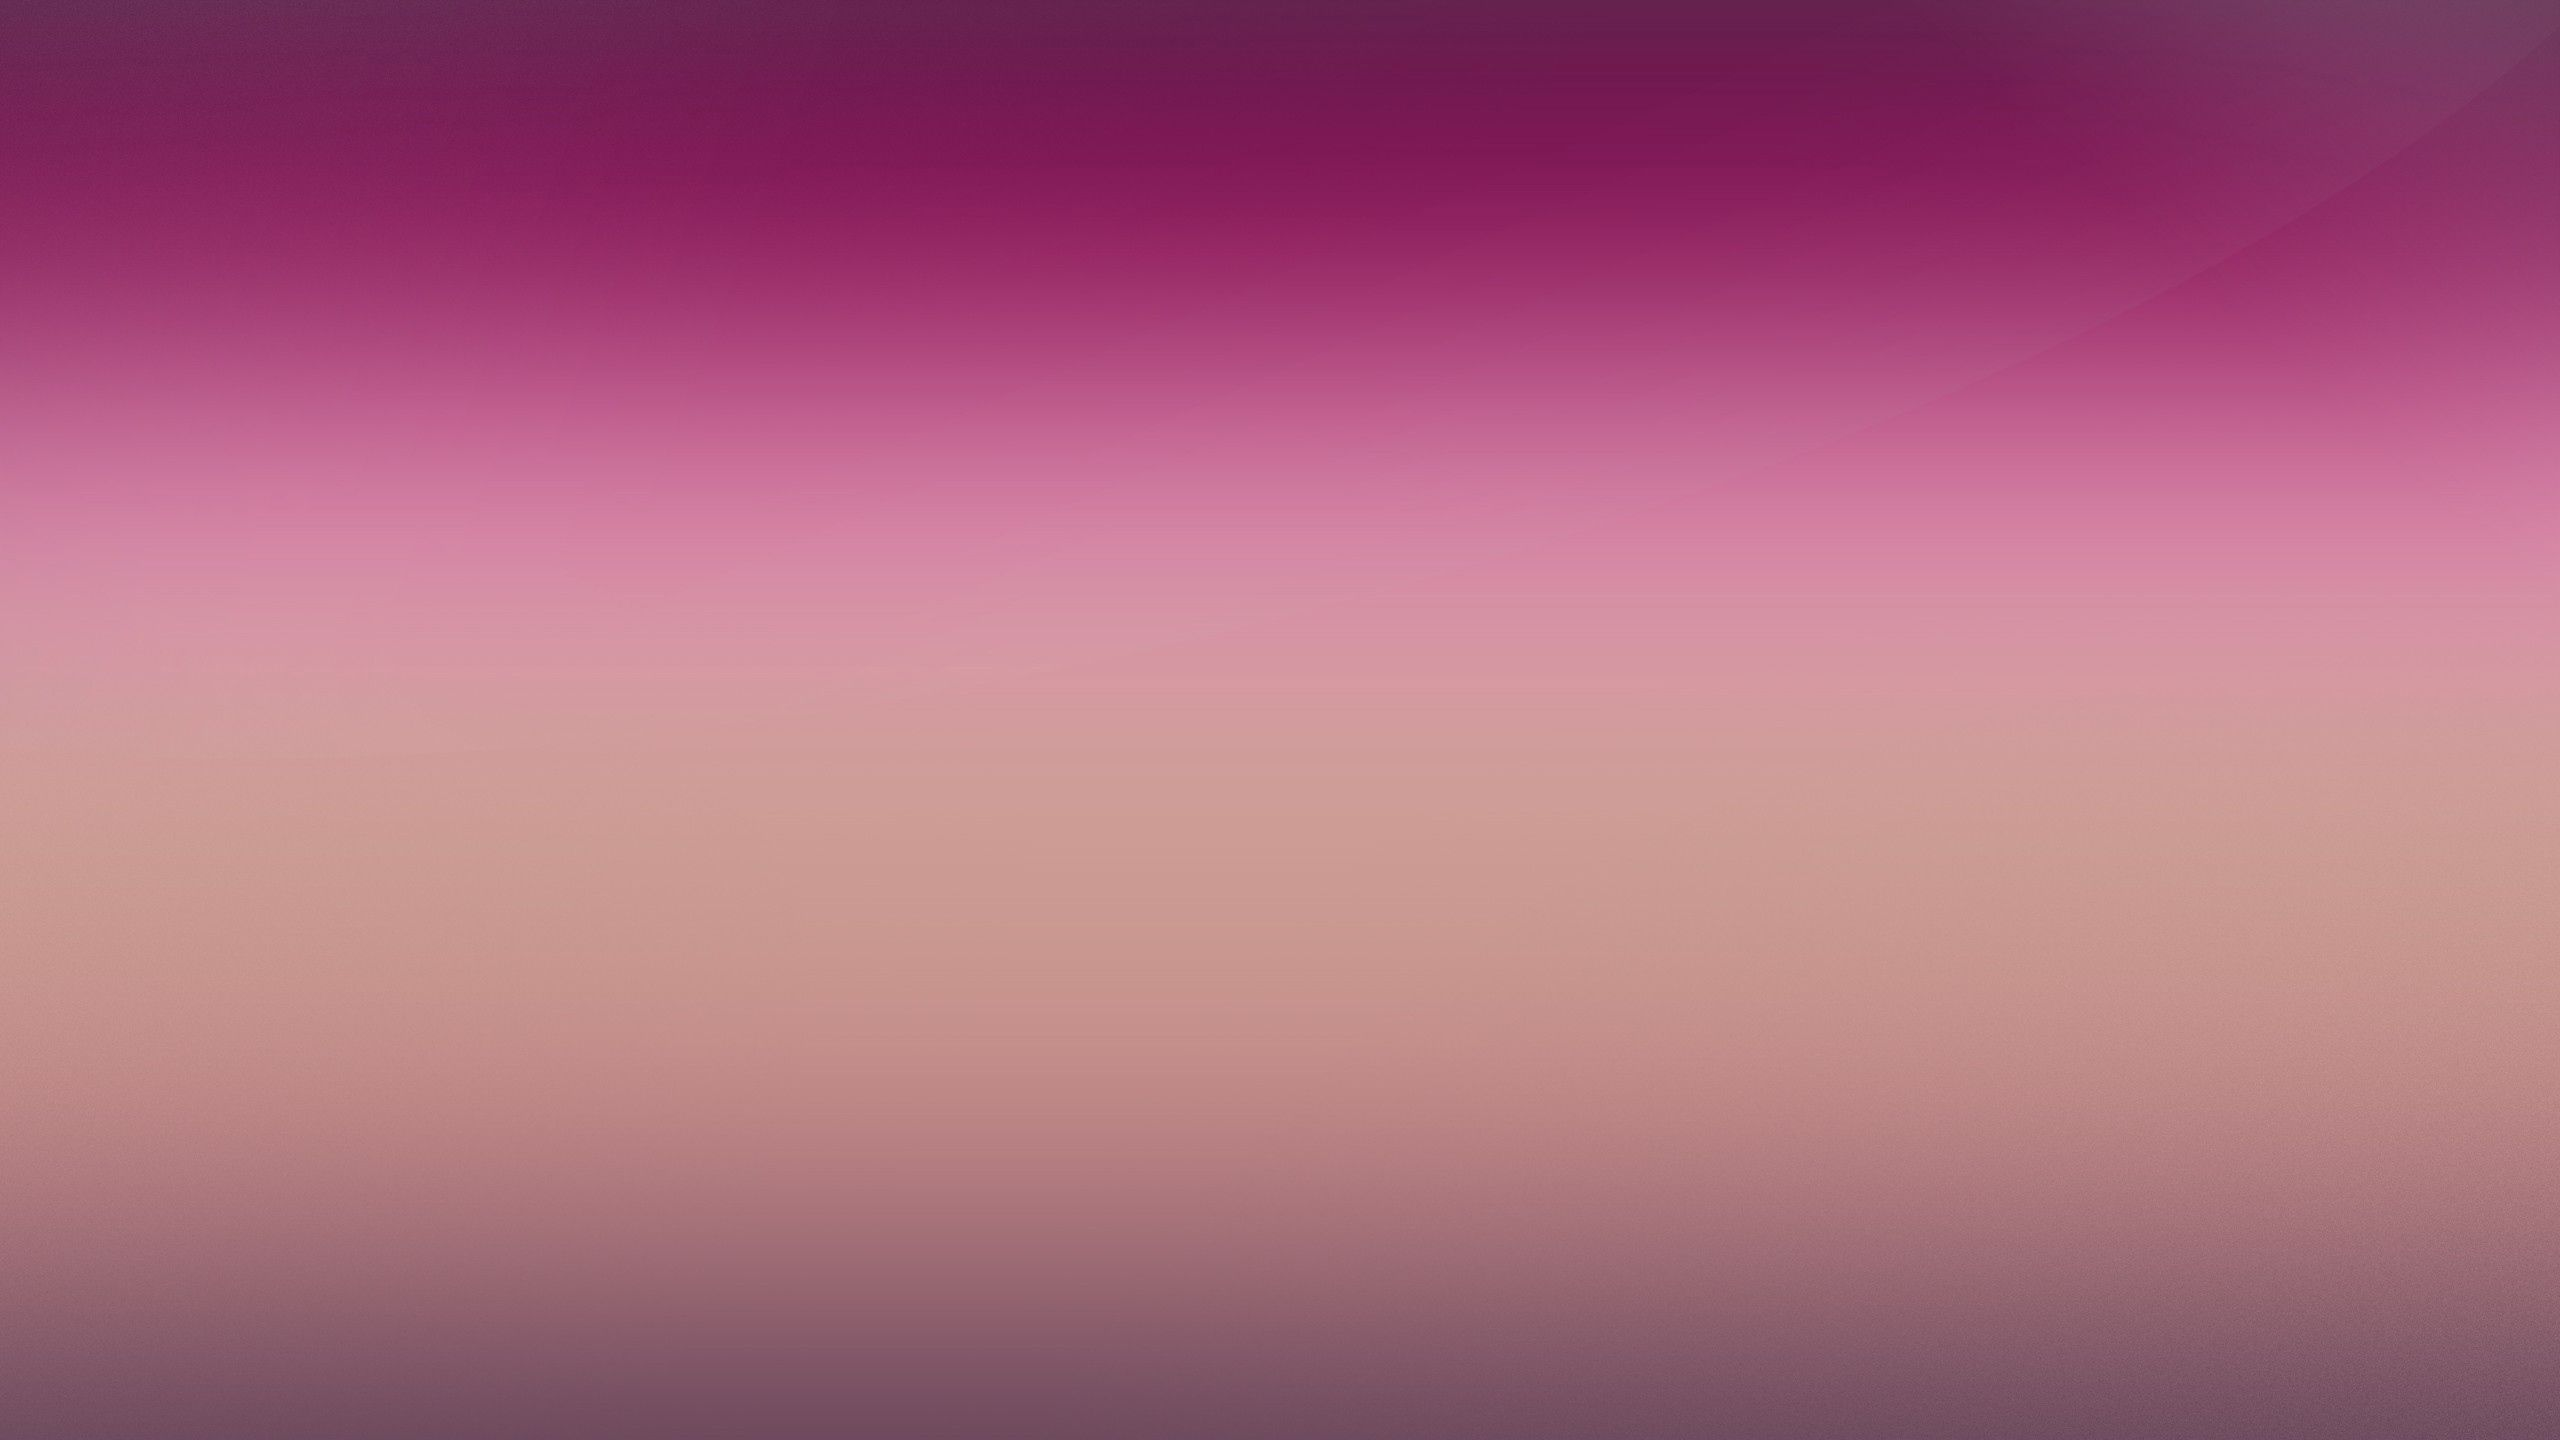 2560X1440 Pink Wallpapers - Top Free 2560X1440 Pink